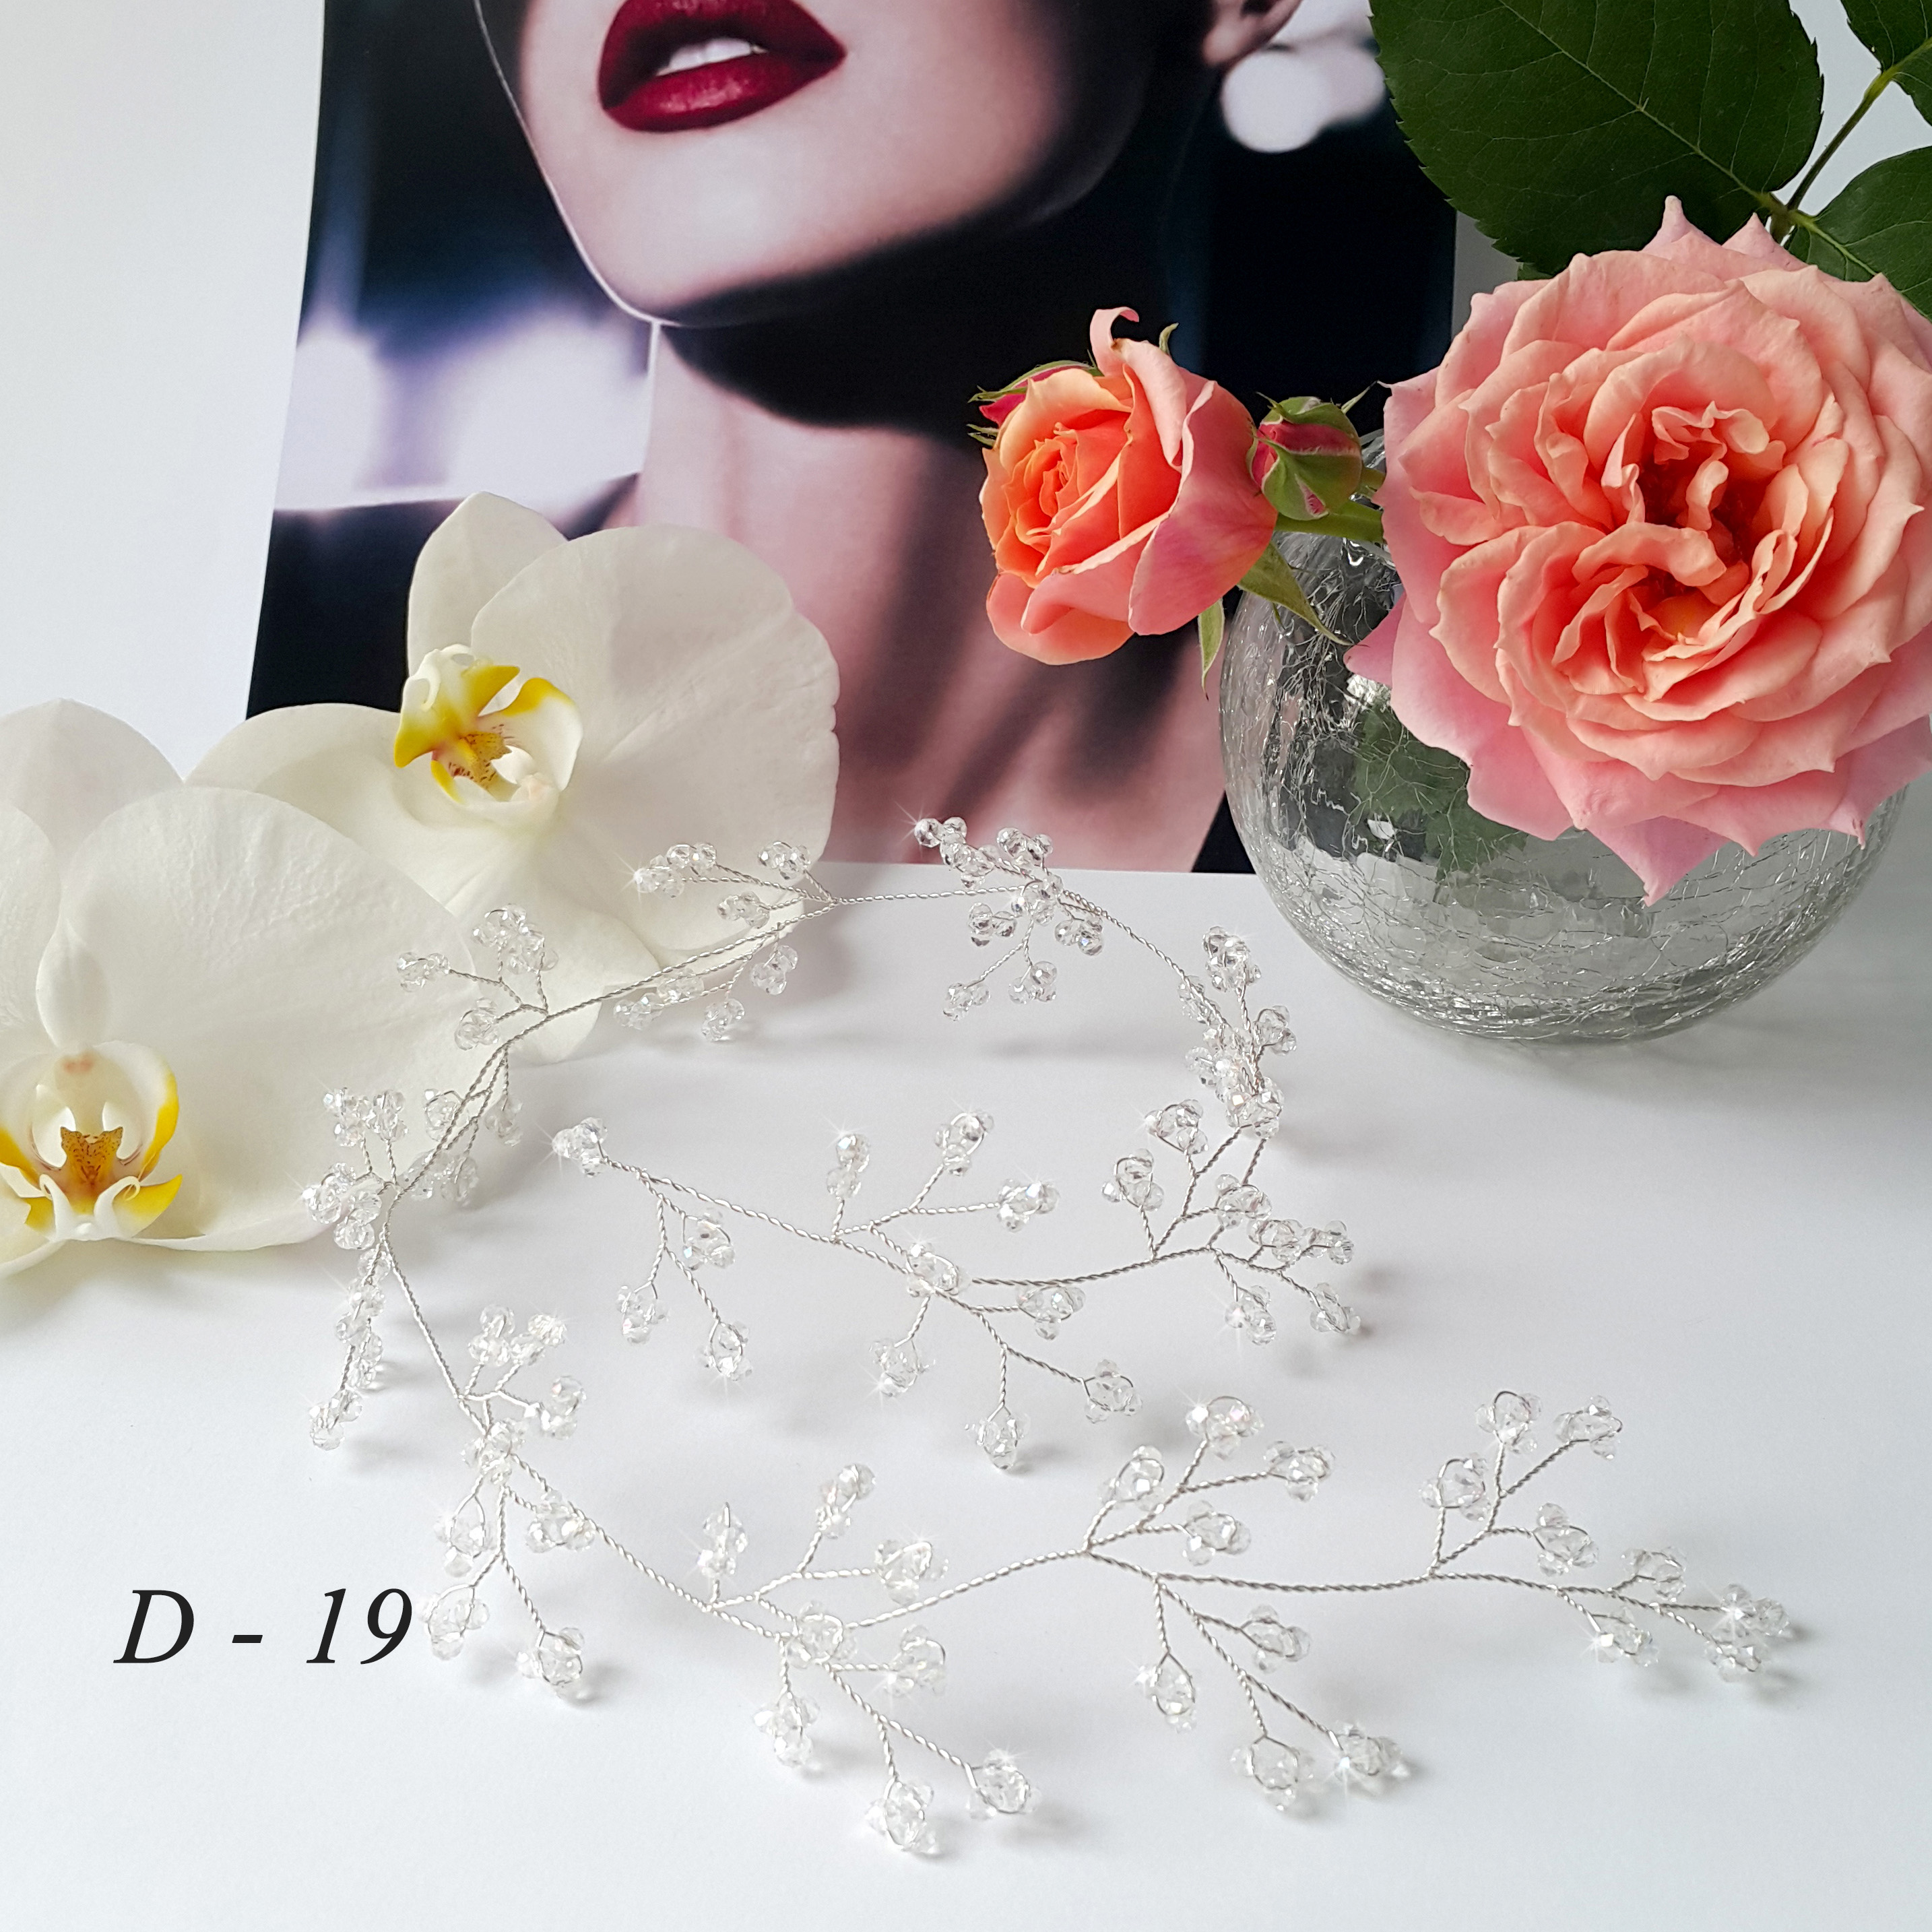 Accessory D 19 for the bride Foto 3